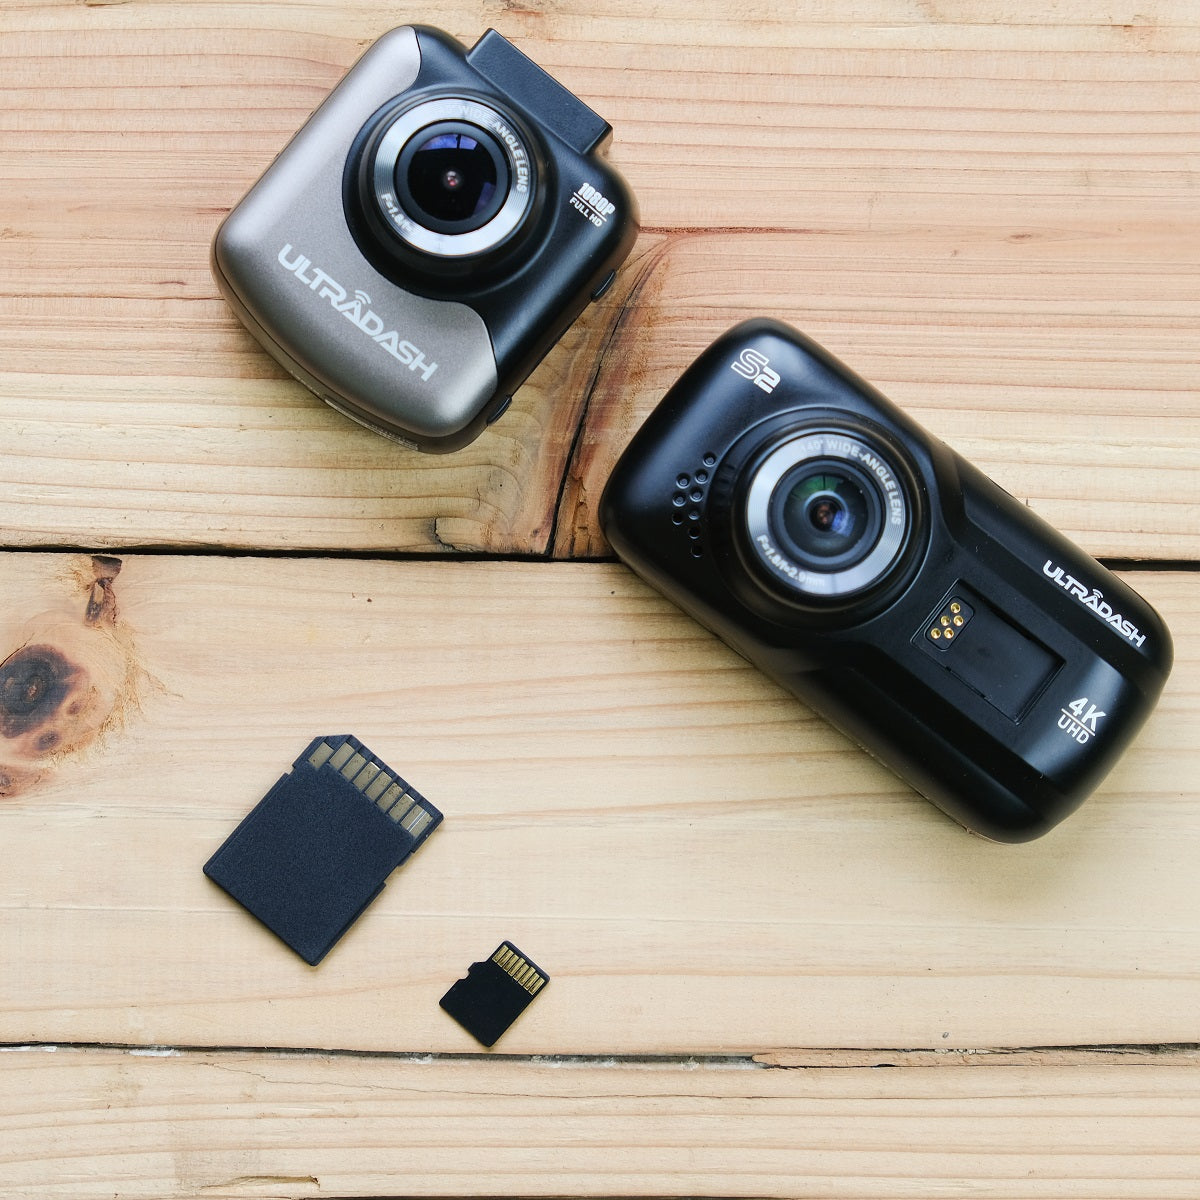 6 Tips to Select the Best SD Card for Your Dash Cam – Cansonic Dash Cam